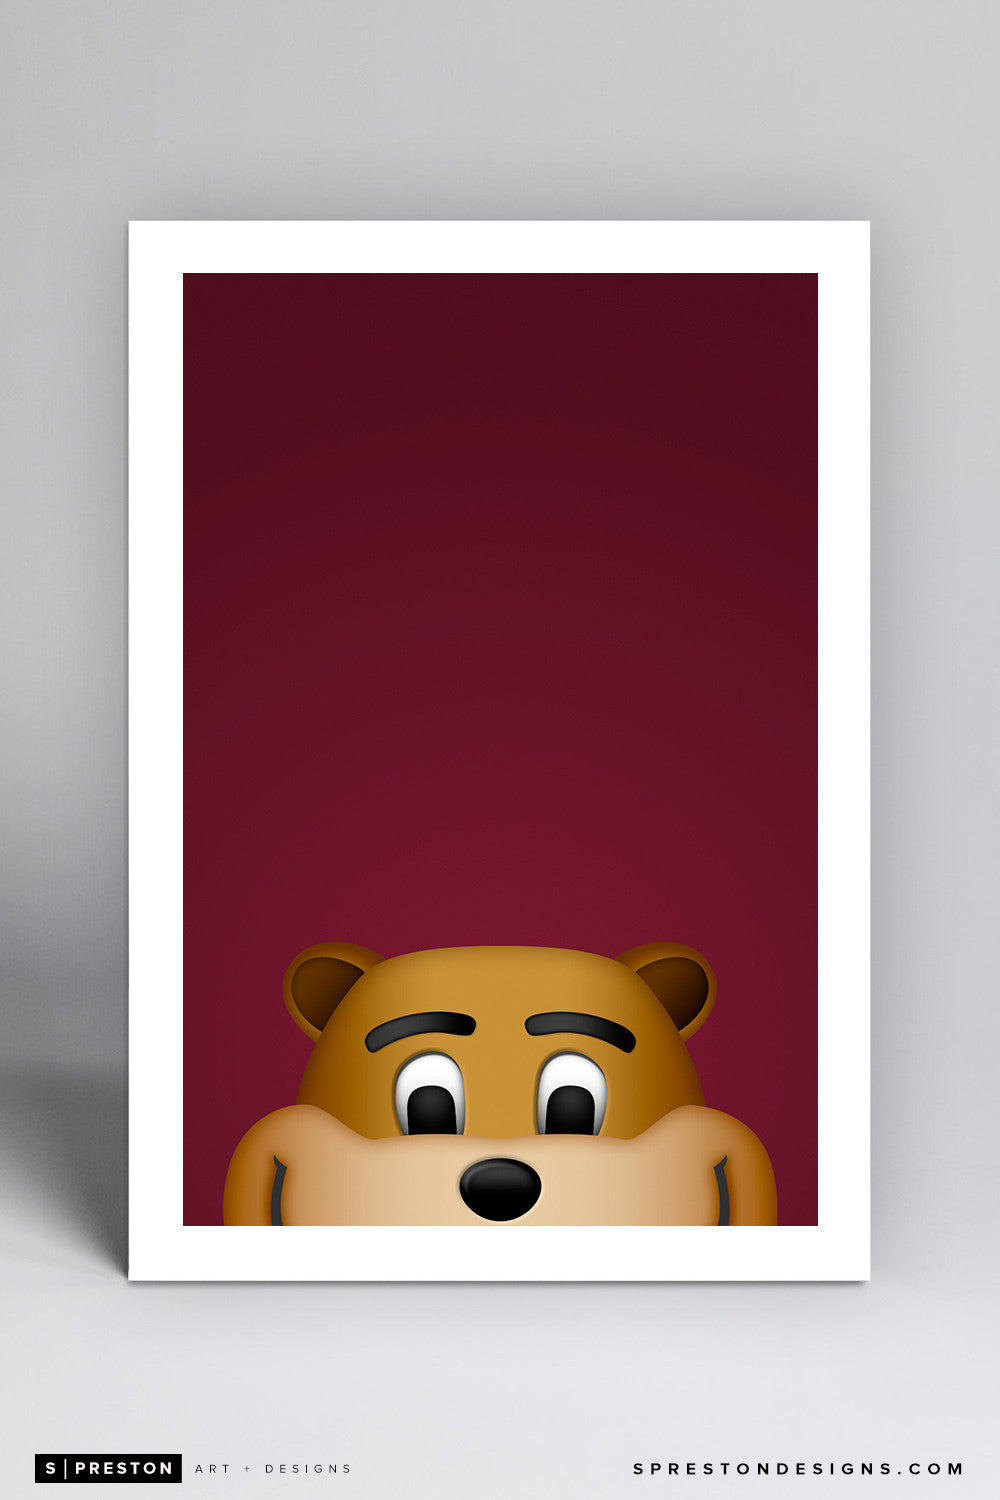 Minimalist Goldy Gopher Art Print - University of Minnesota - S. Preston Art + Designs